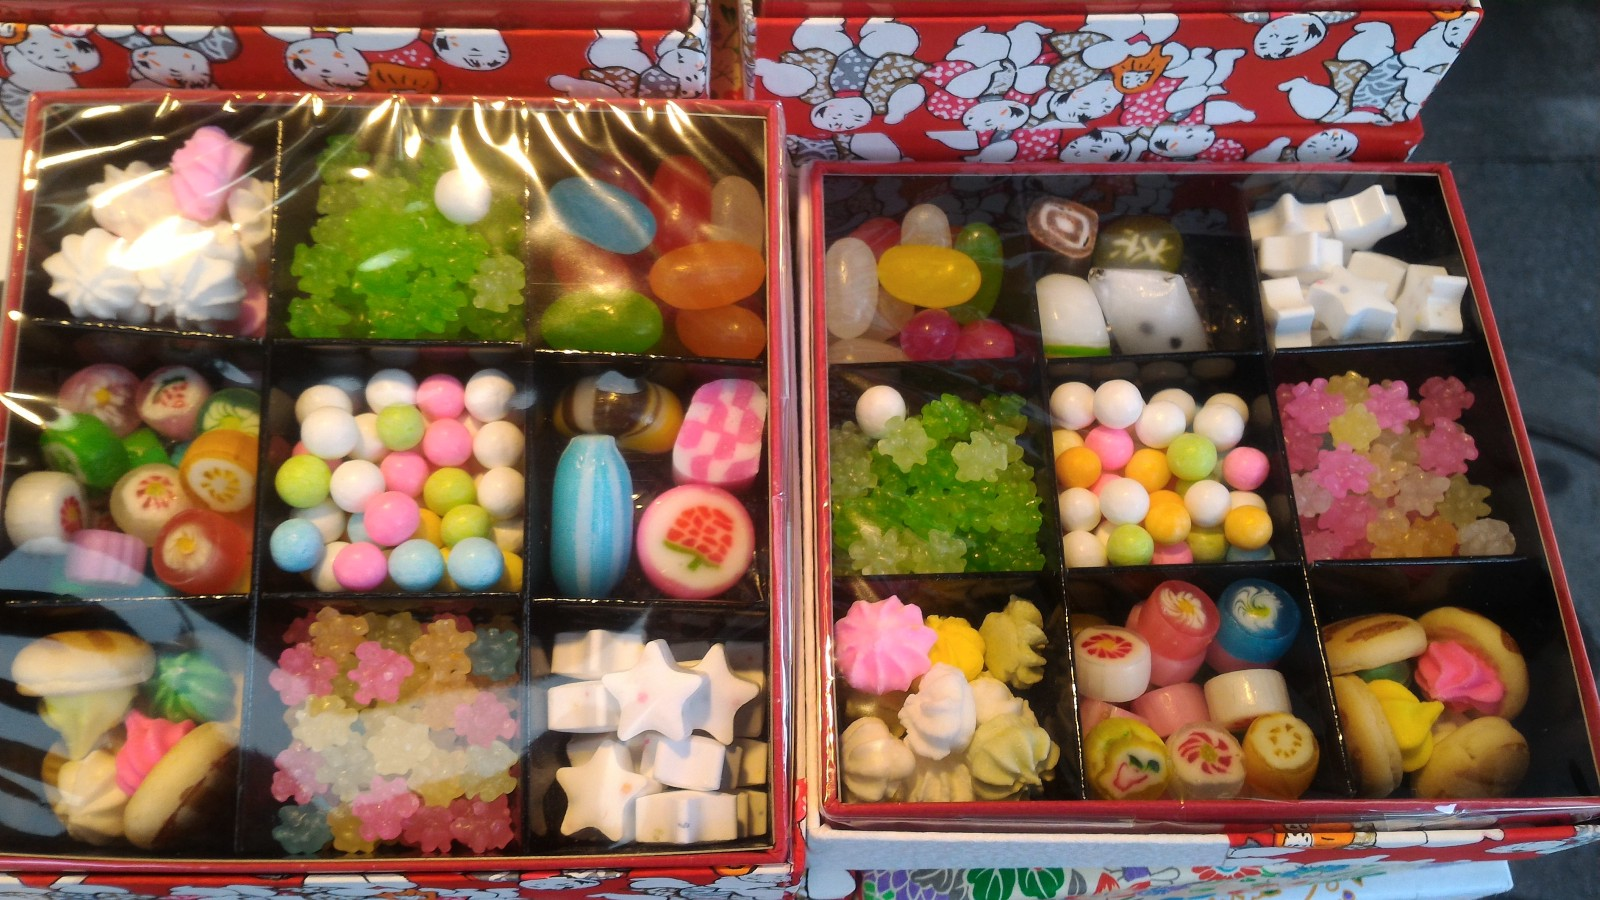 Beautifully shaped Japanese candies sold in boxes